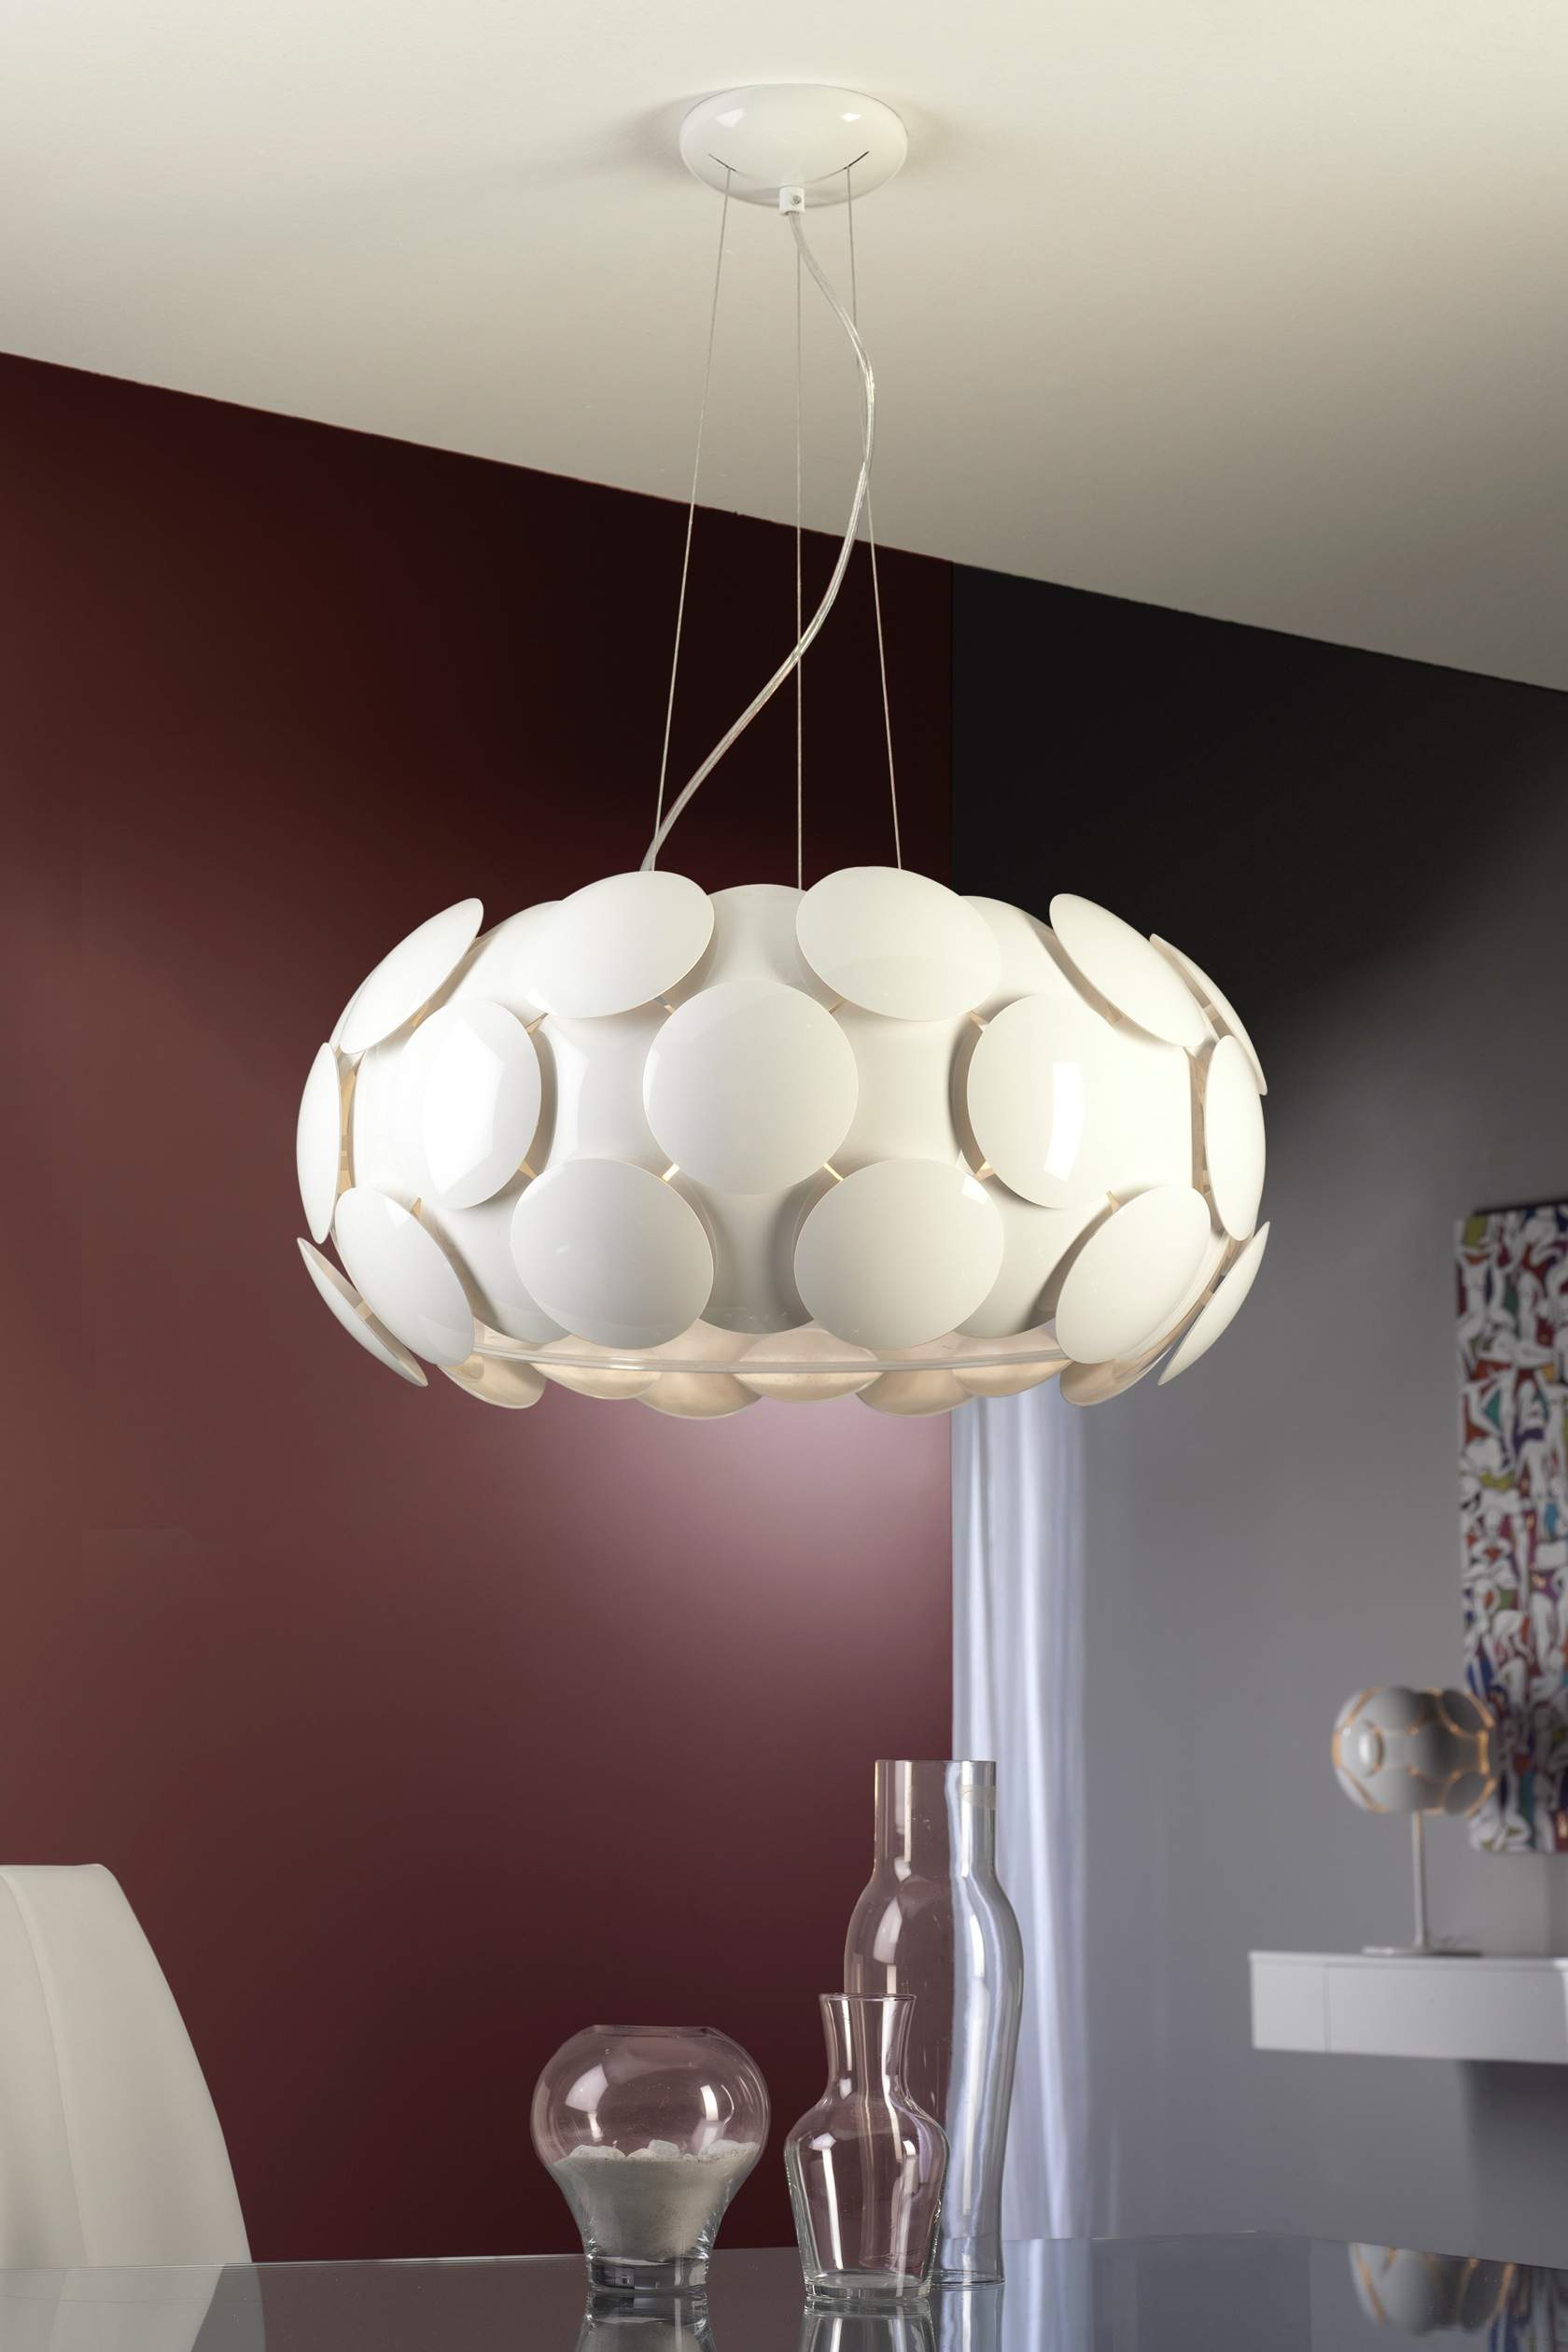 Egea Pendant Lamp ø60 7xE27 LED 10W white